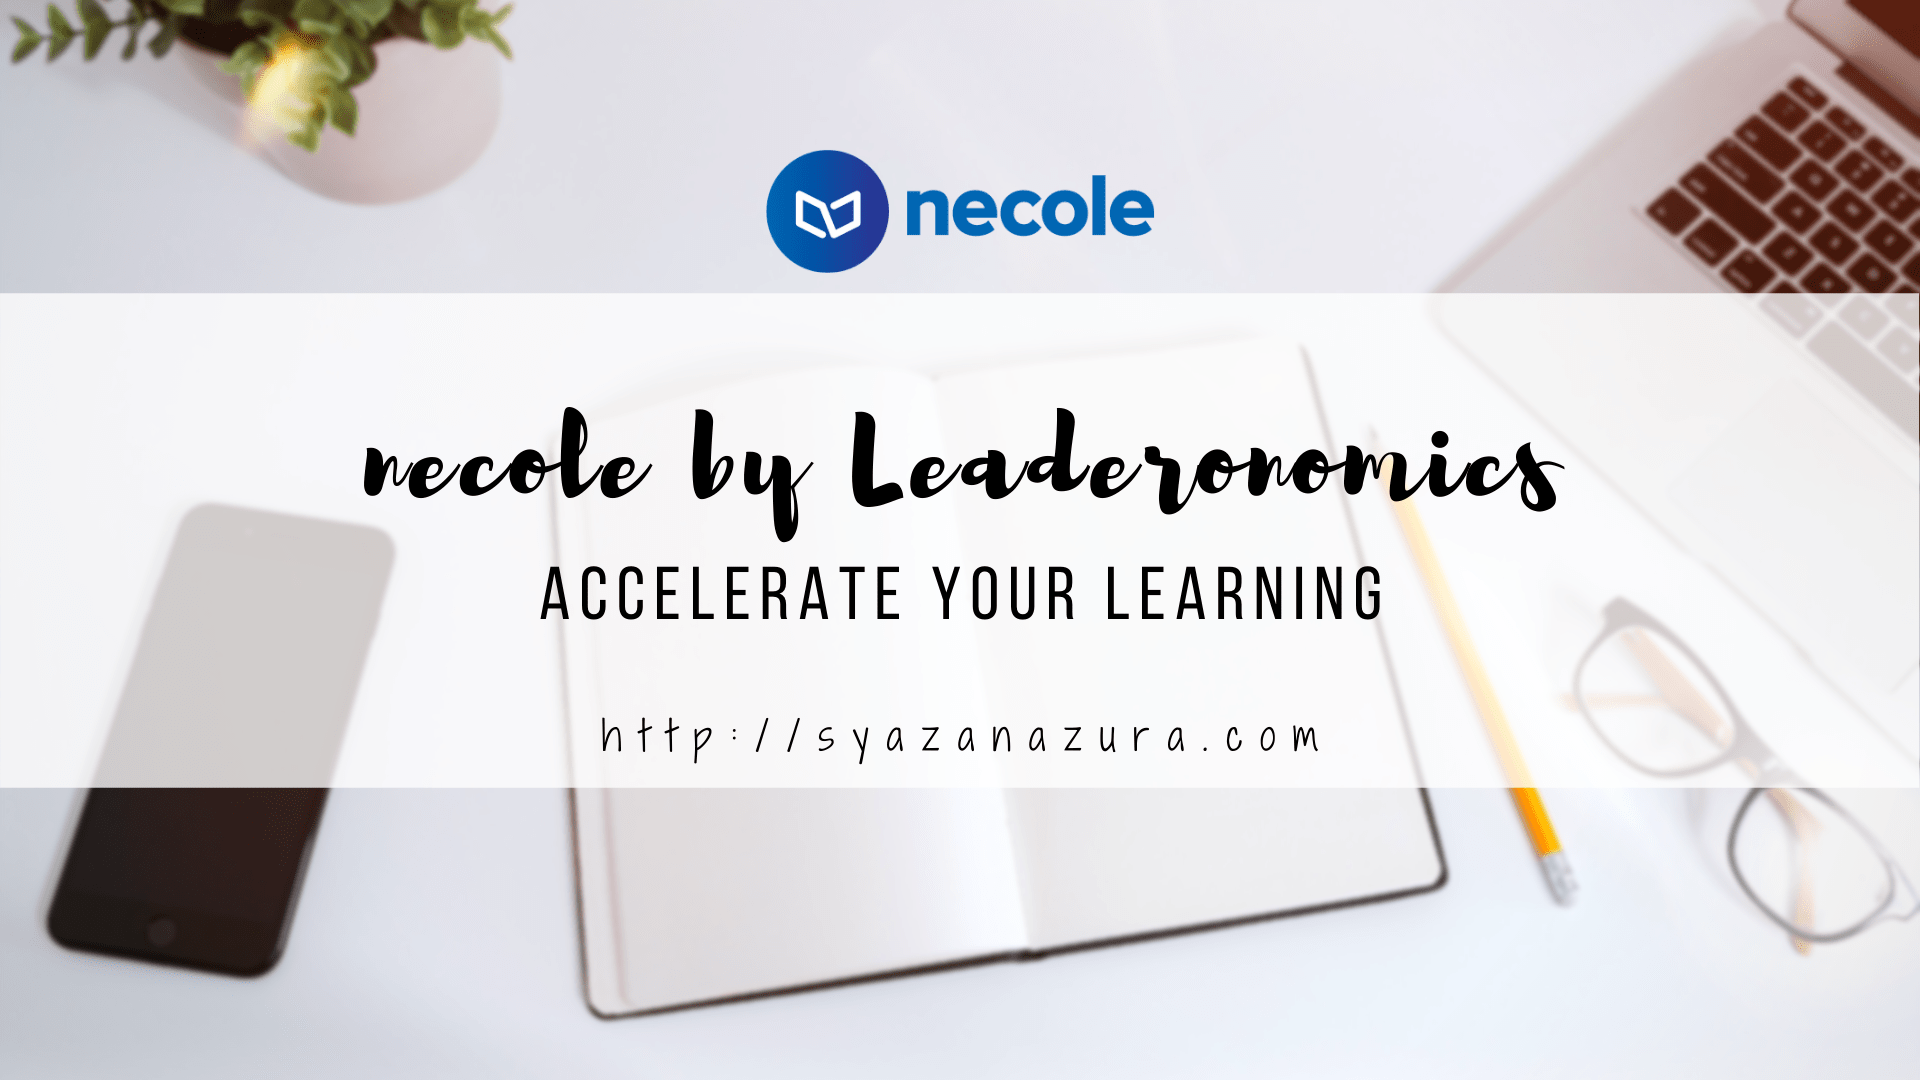 necole by Leaderonomics: Accelerate your learning.